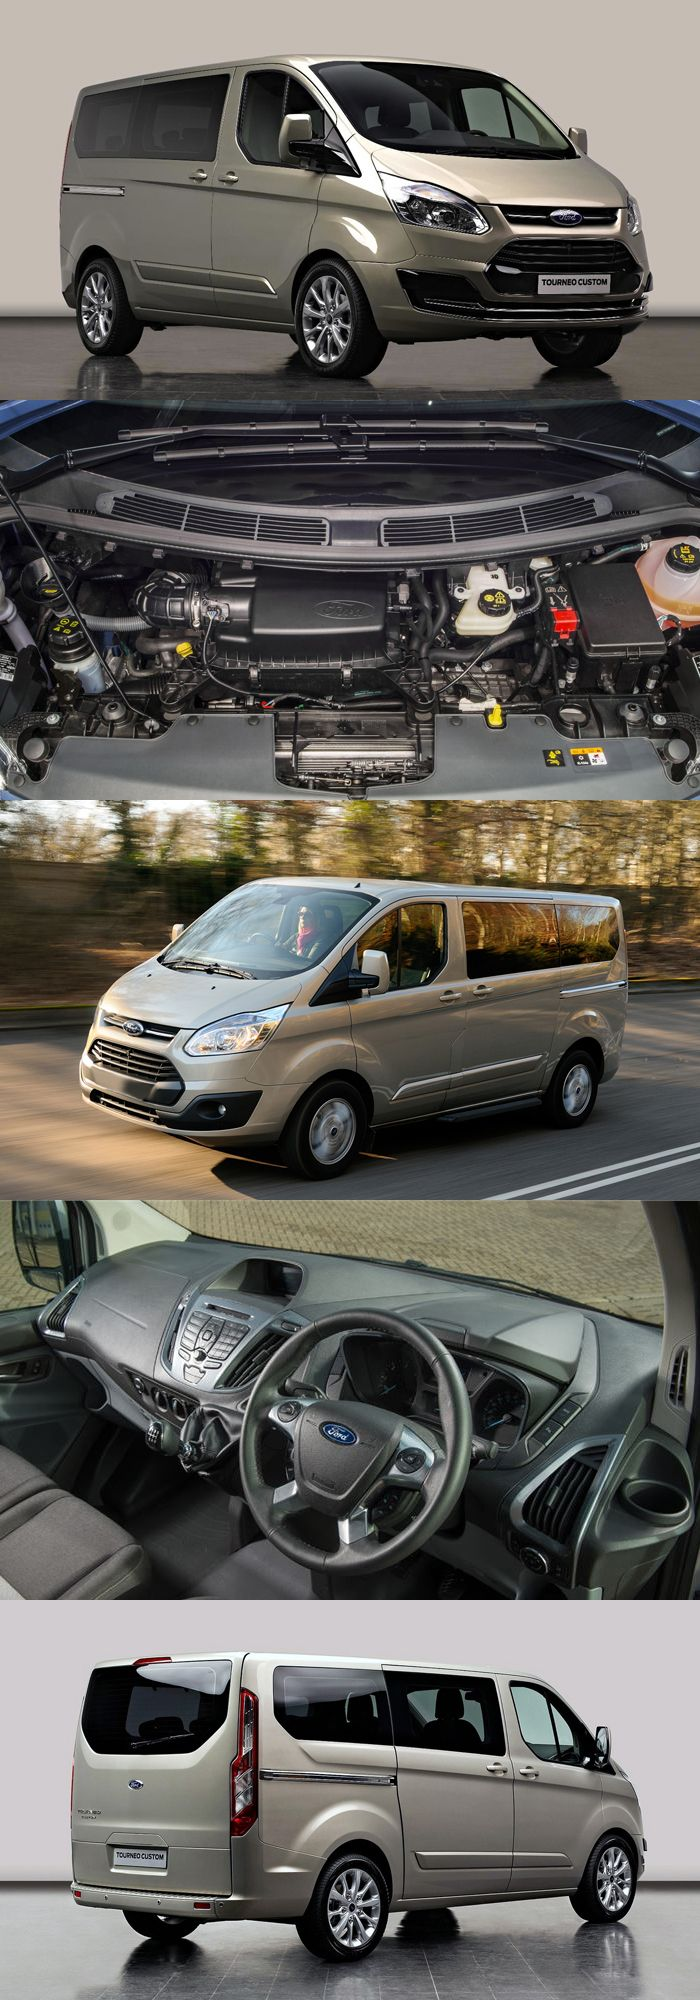 Ford Transit 2 0 Engine Review For More Read Andrewfordcity Wordpress Com 2017 03 27 Ford Transit 2 0 Engine